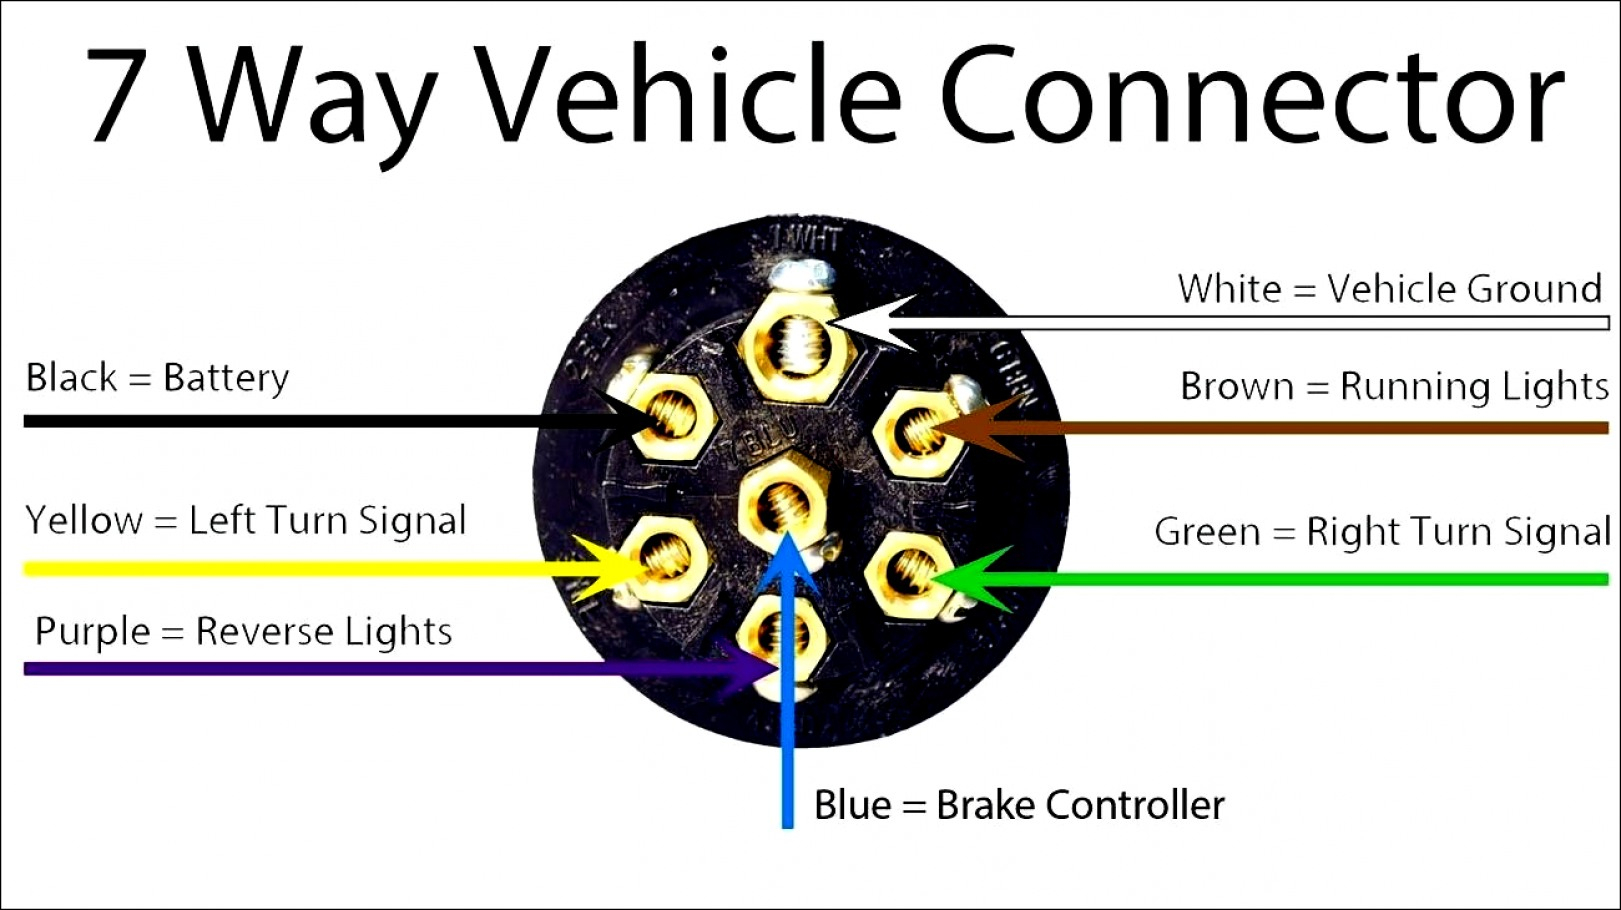 7 Round Trailer Wiring - Data Wiring Diagram Schematic - 7 Way Trailer Connector Wiring Diagram